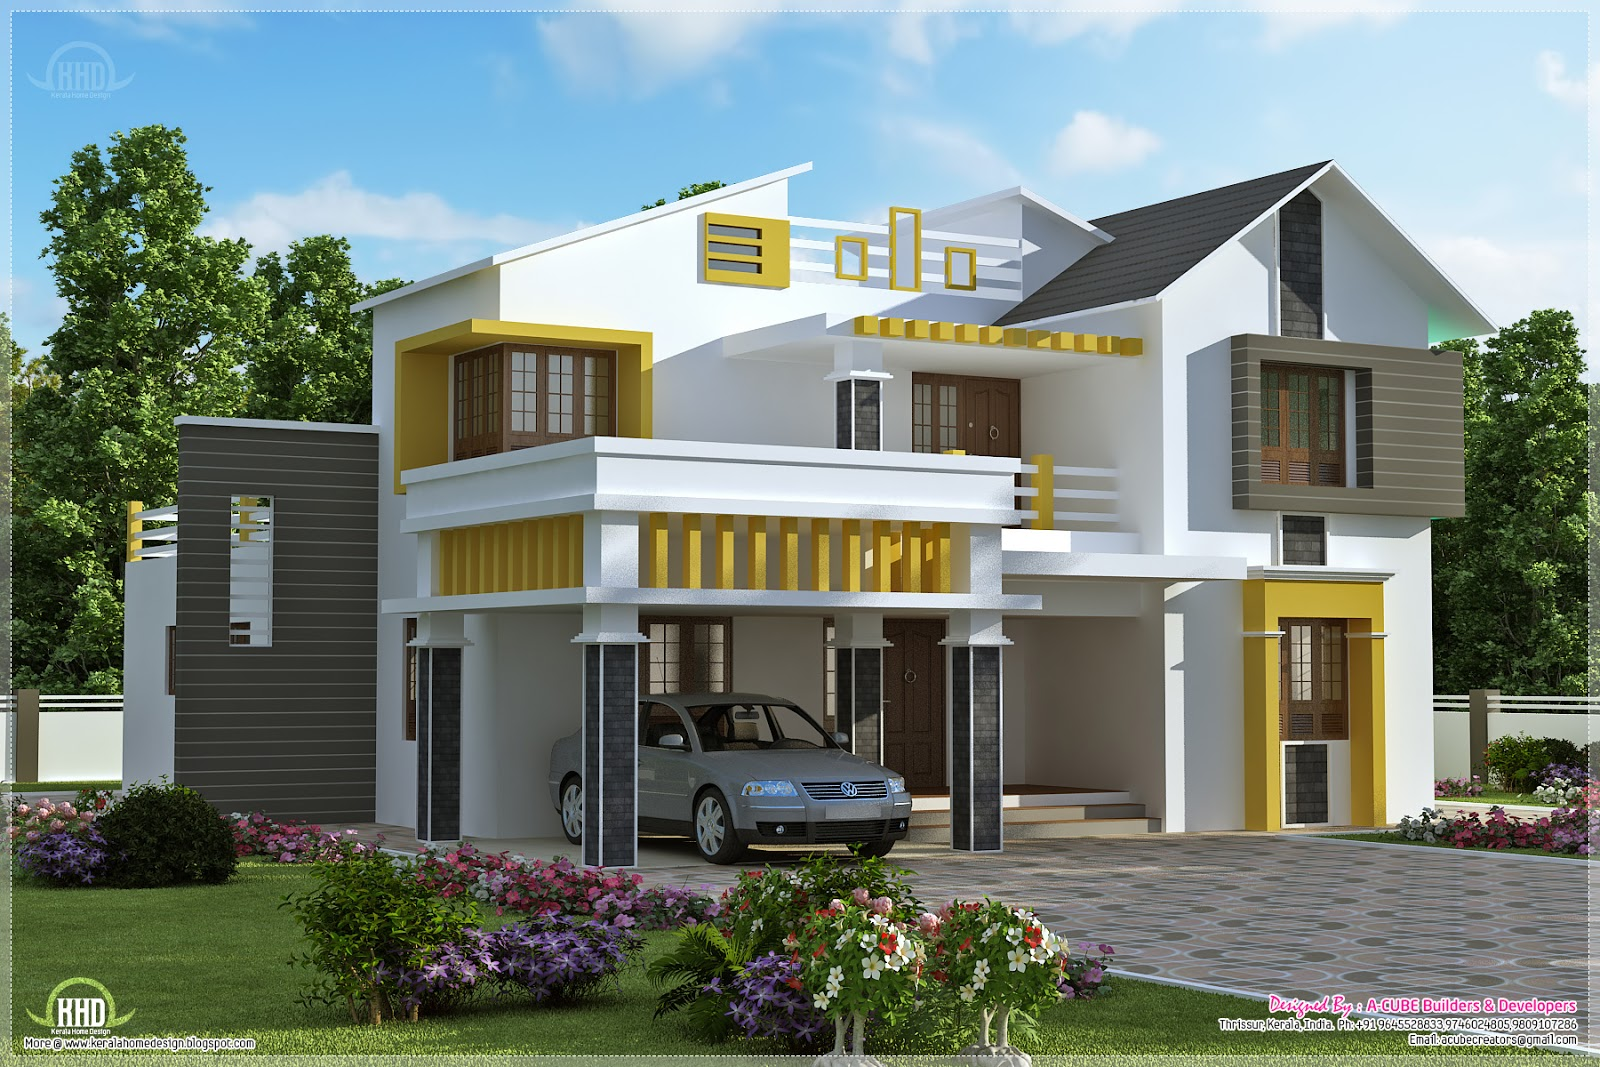 8 Million Dollar Car Wallpapers Eco Friendly Houses Kerala Contemporary Villa With 4 Bedroom